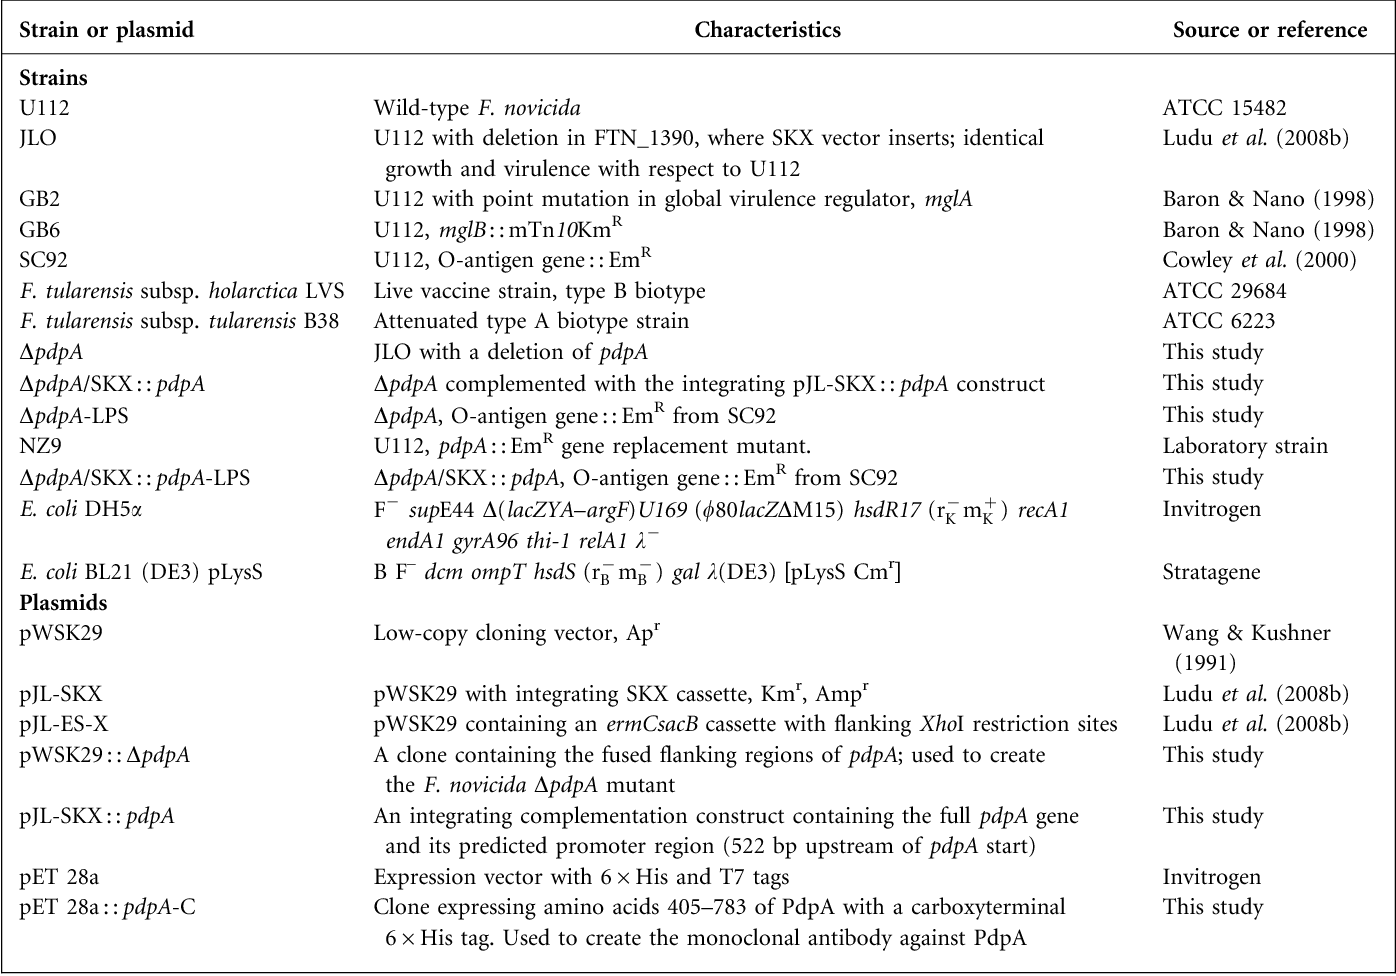 Table 1. Bacterial strains and plasmids used in this study